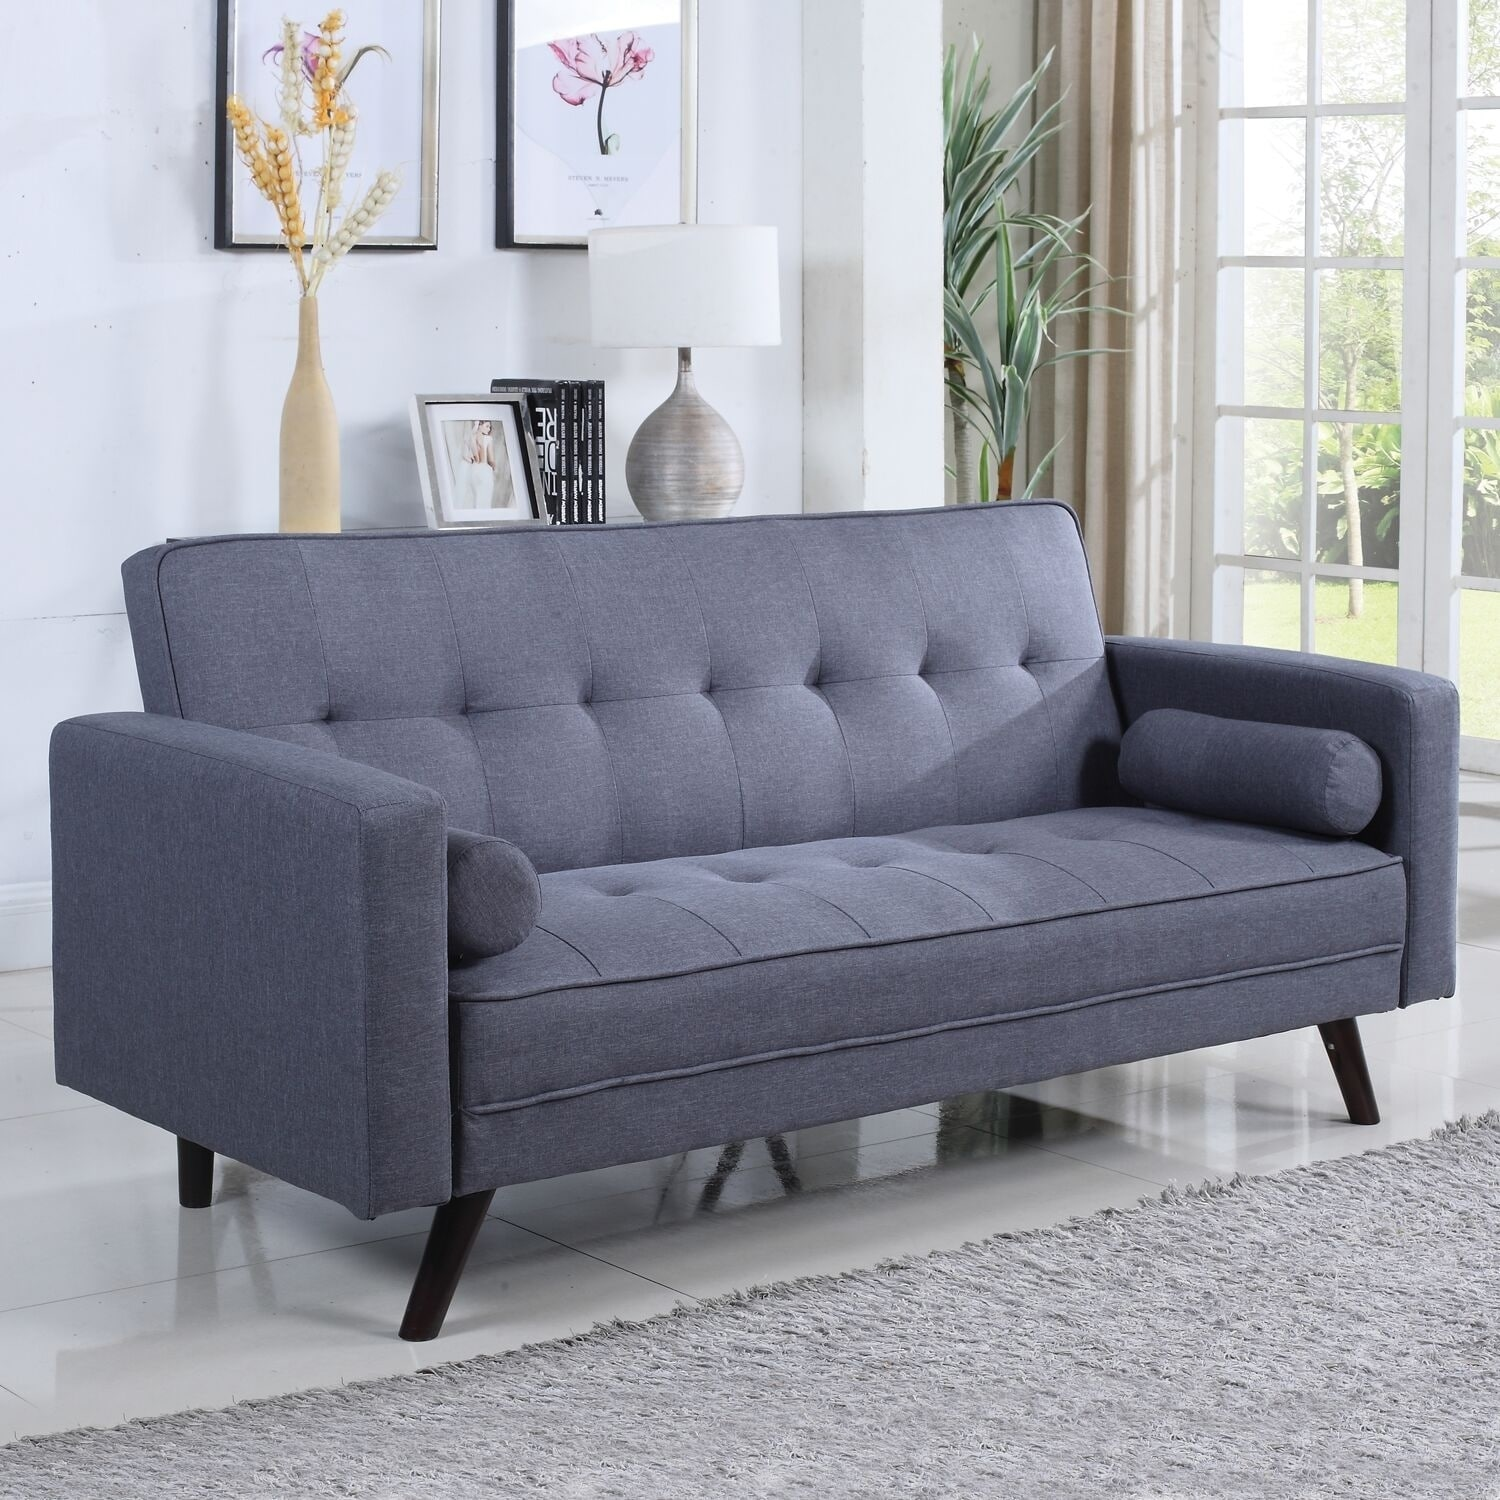 Swell Santa Clara Grey Tufted Sofabed Gamerscity Chair Design For Home Gamerscityorg